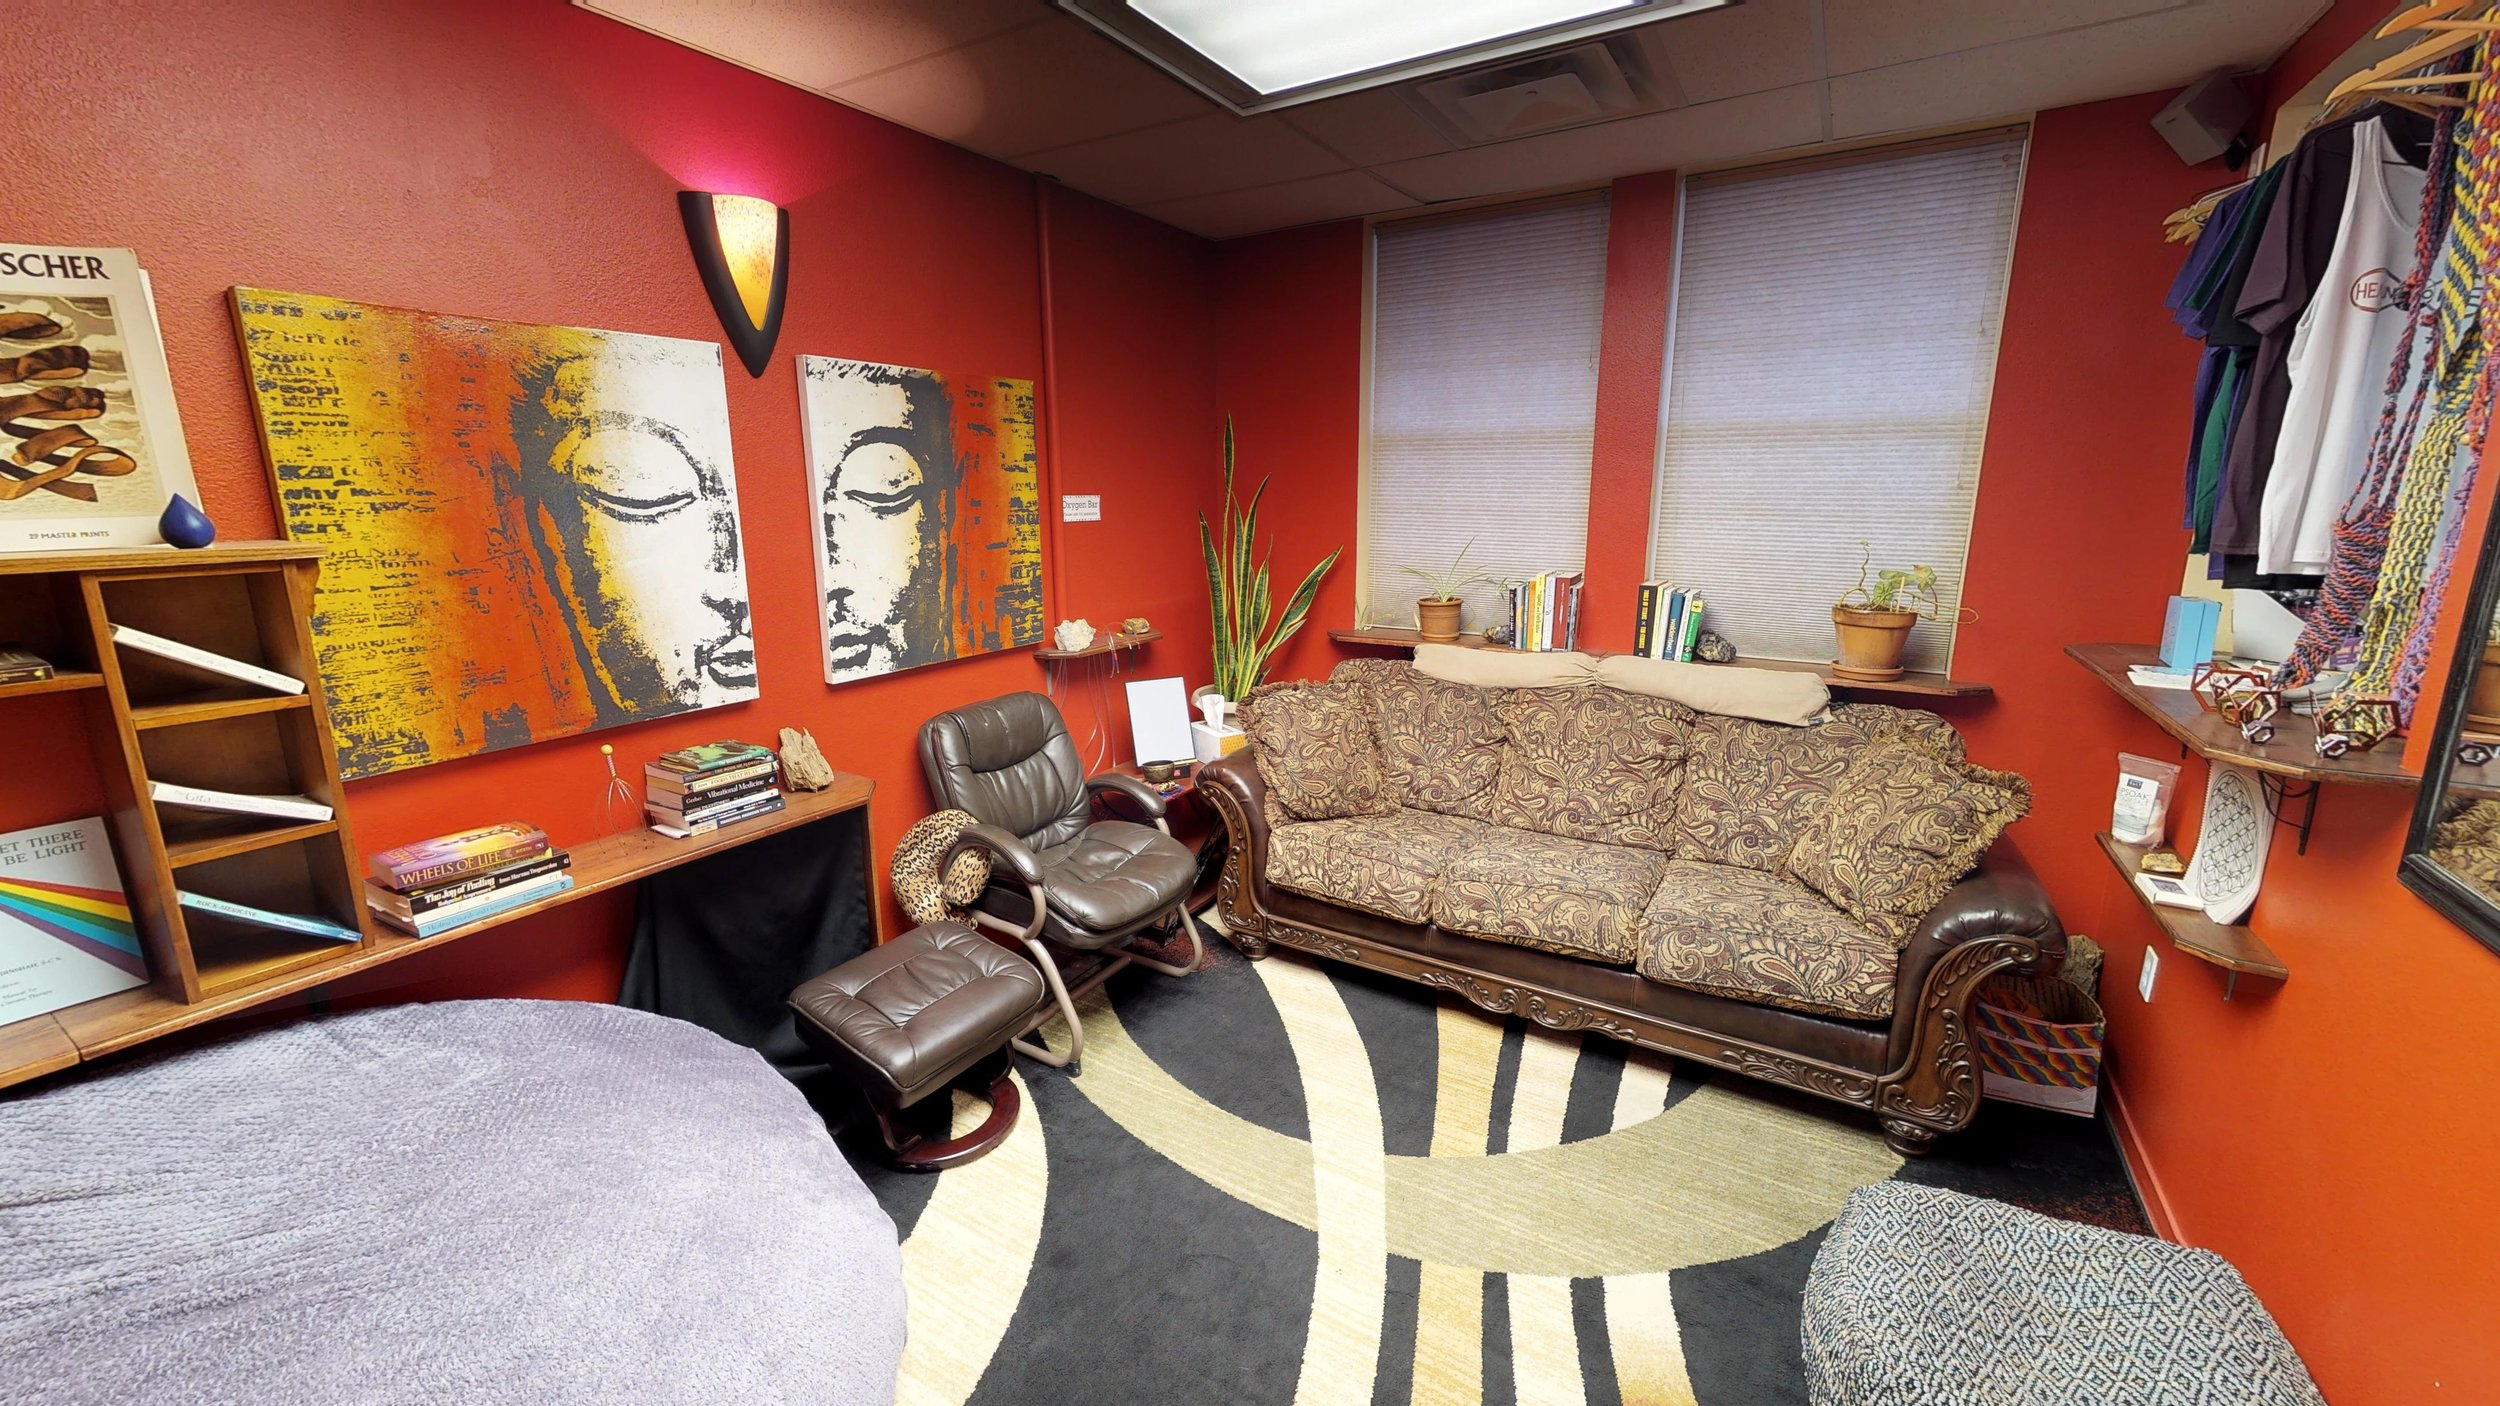 WWwzA4nwK38 - Relaxation Room.jpg